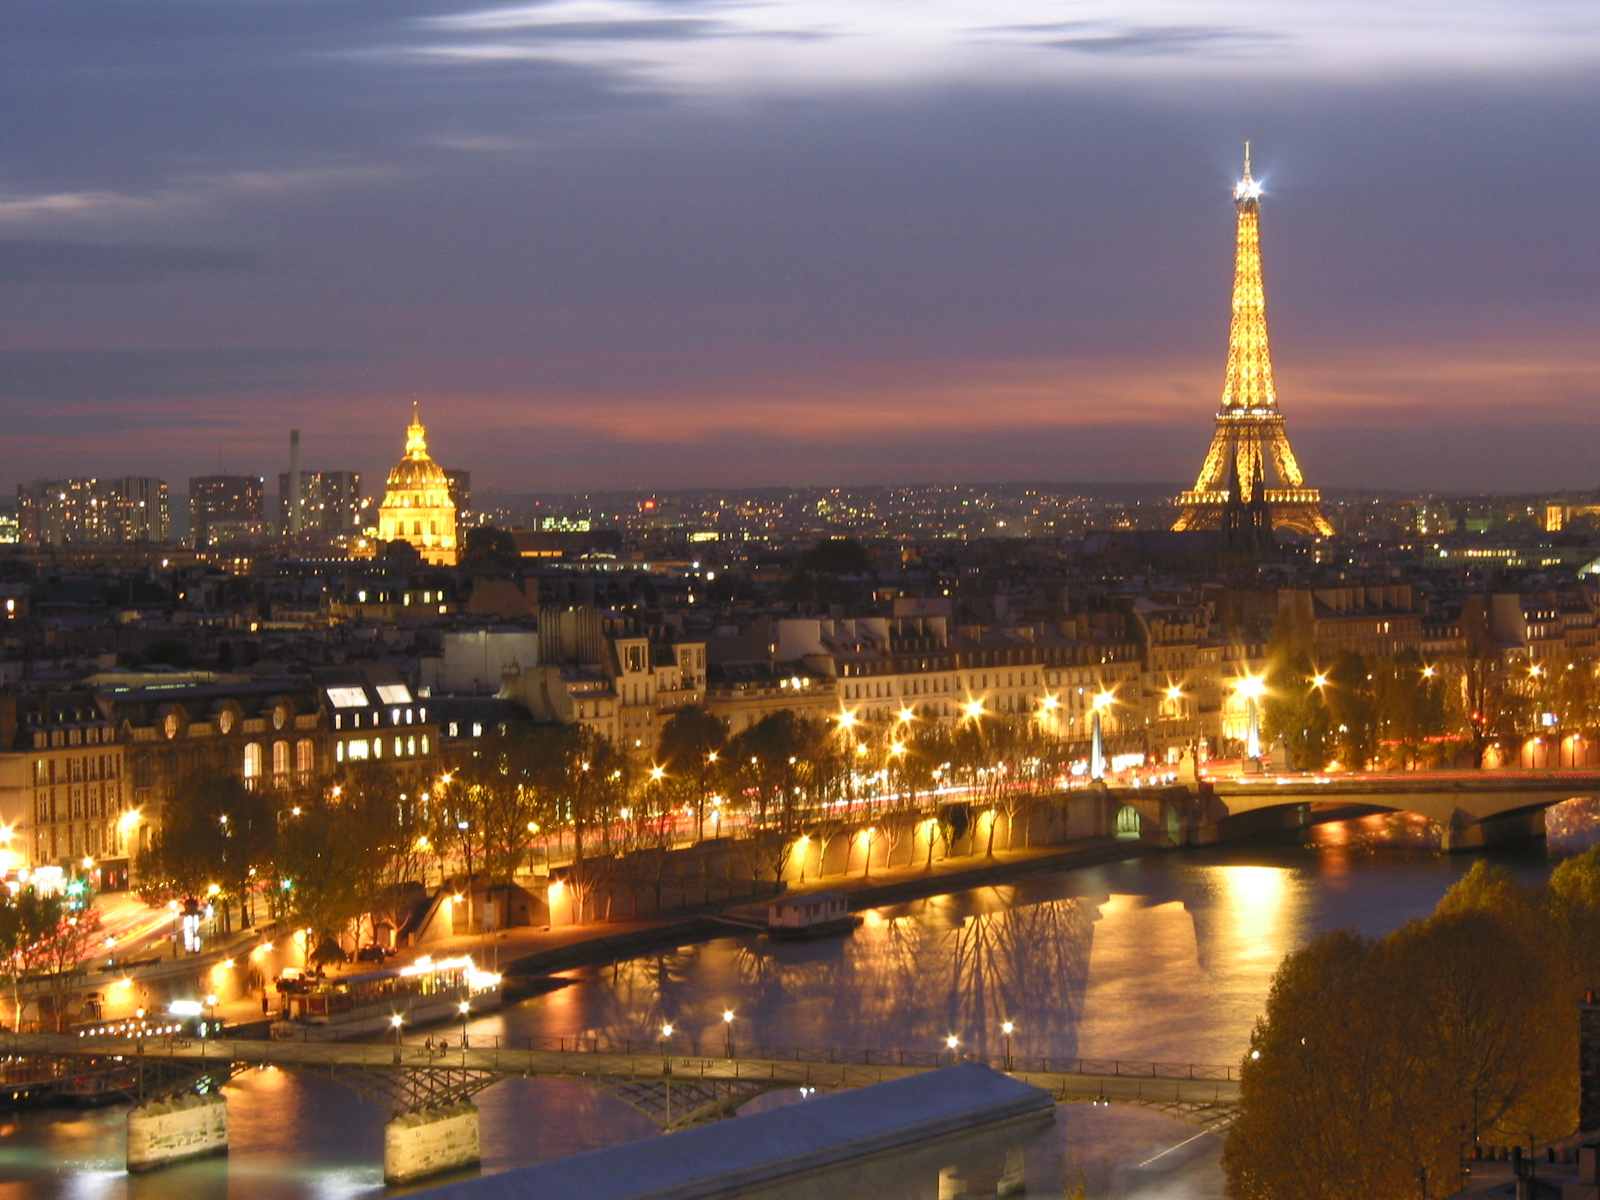 places paris visit france place wonderful night things beauty travel visiting stay famous stunning very visited there tourist earth spot